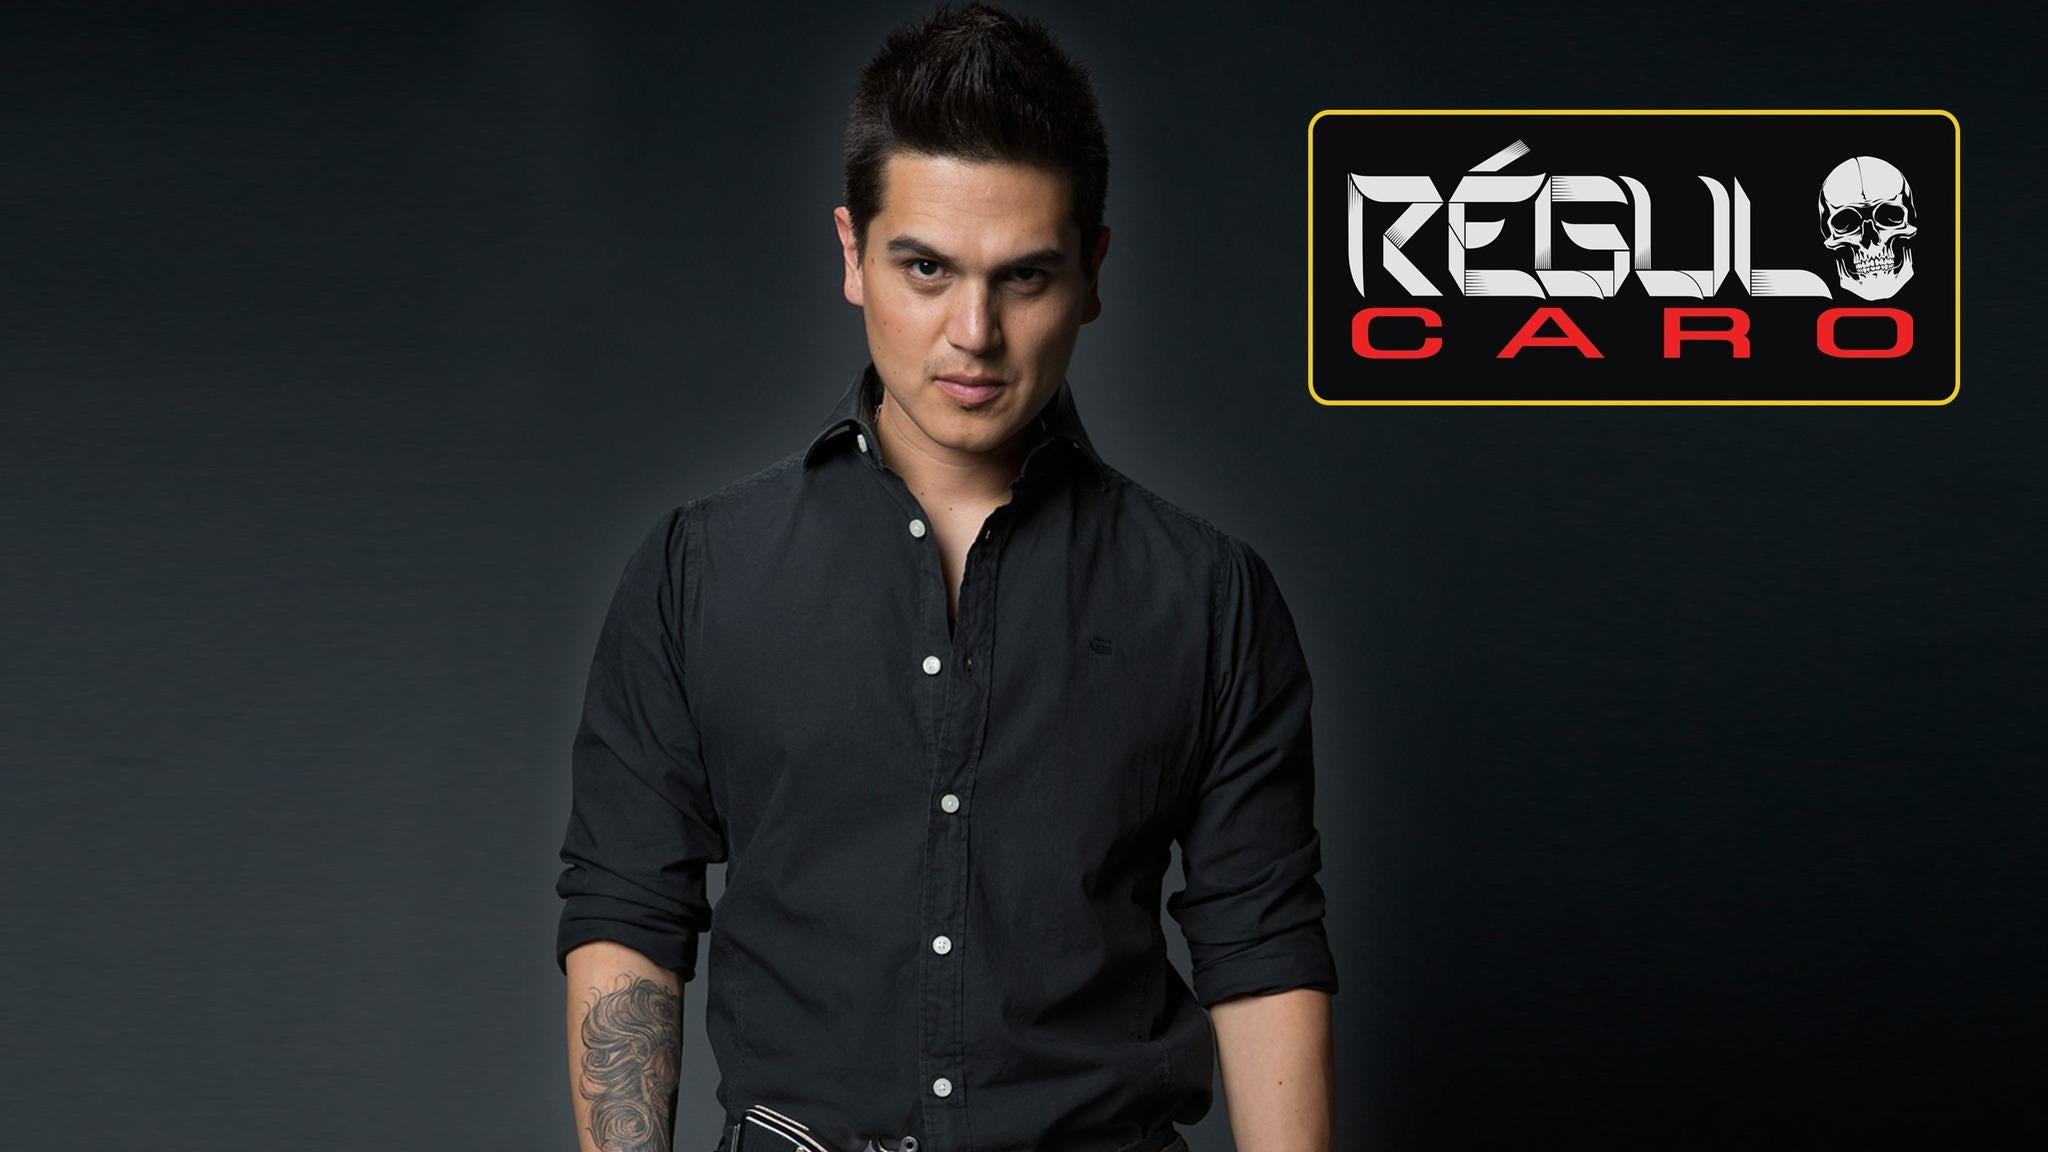 Regulo Caro at Aragon Ballroom